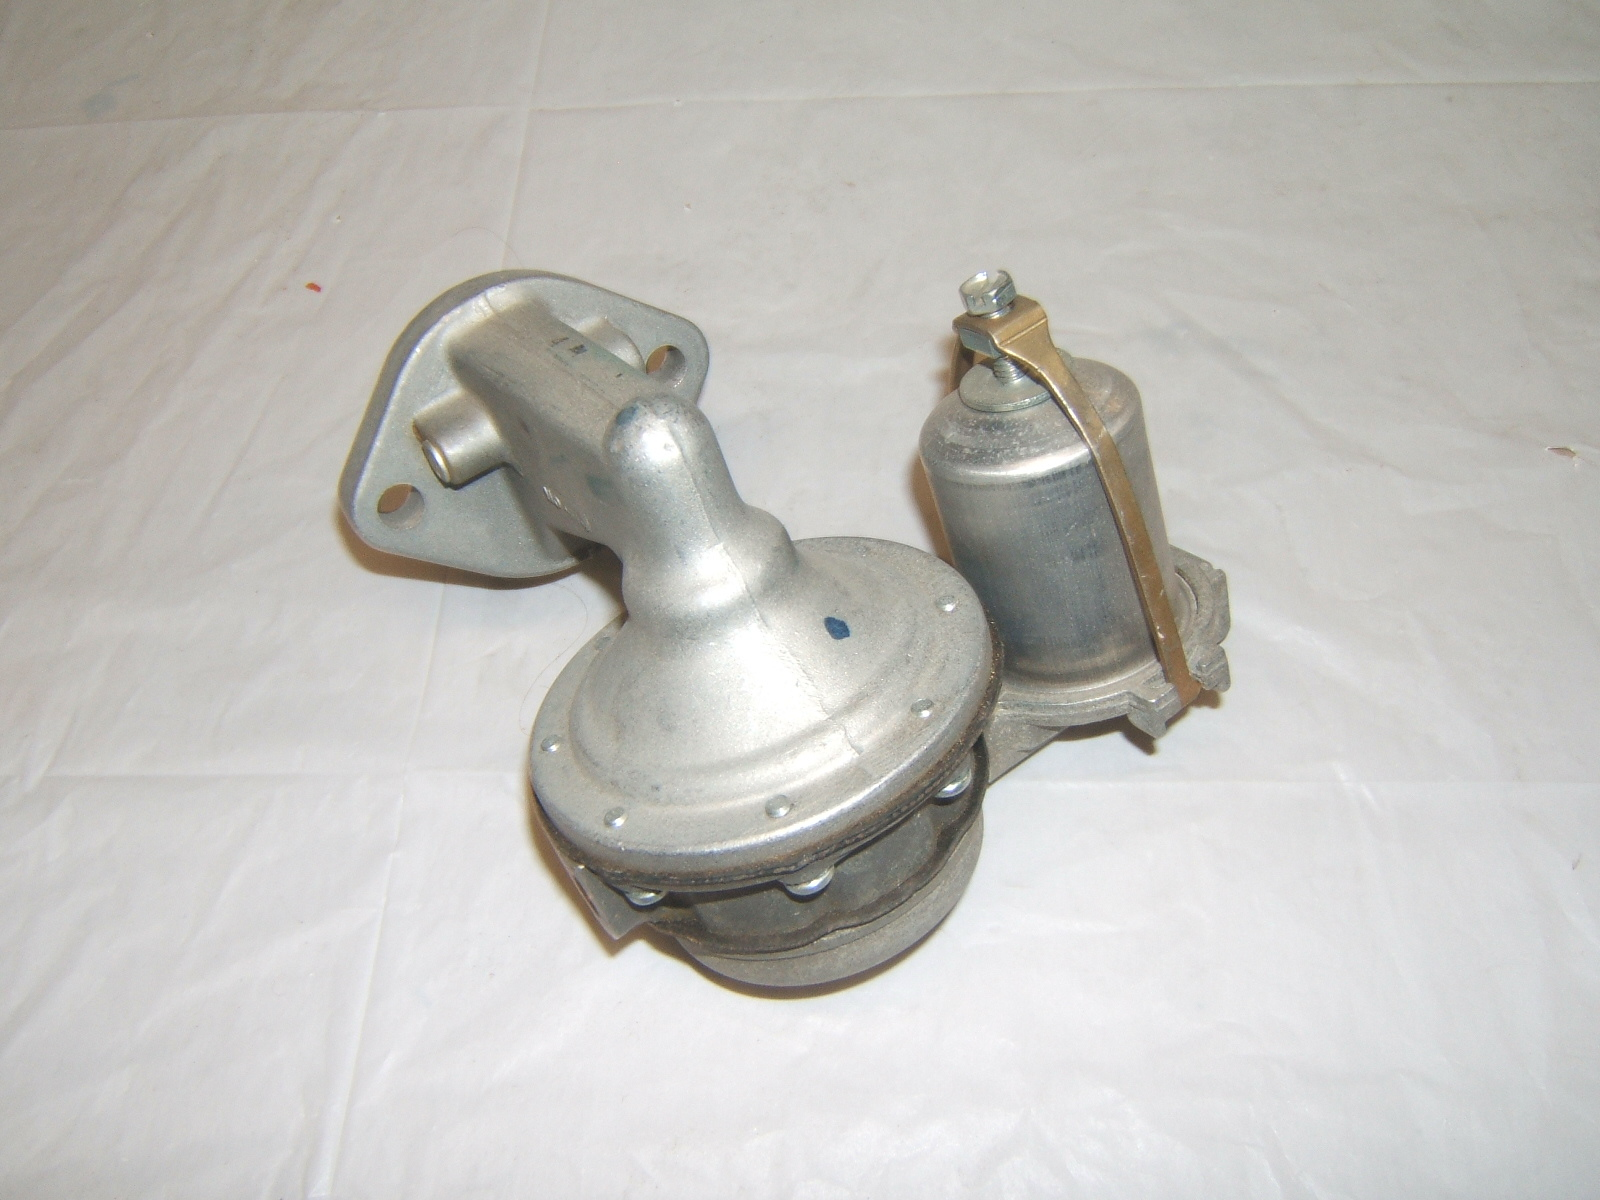 1937 -68 International truck fuel pump new m2213s 4877 580 (a m2213w)